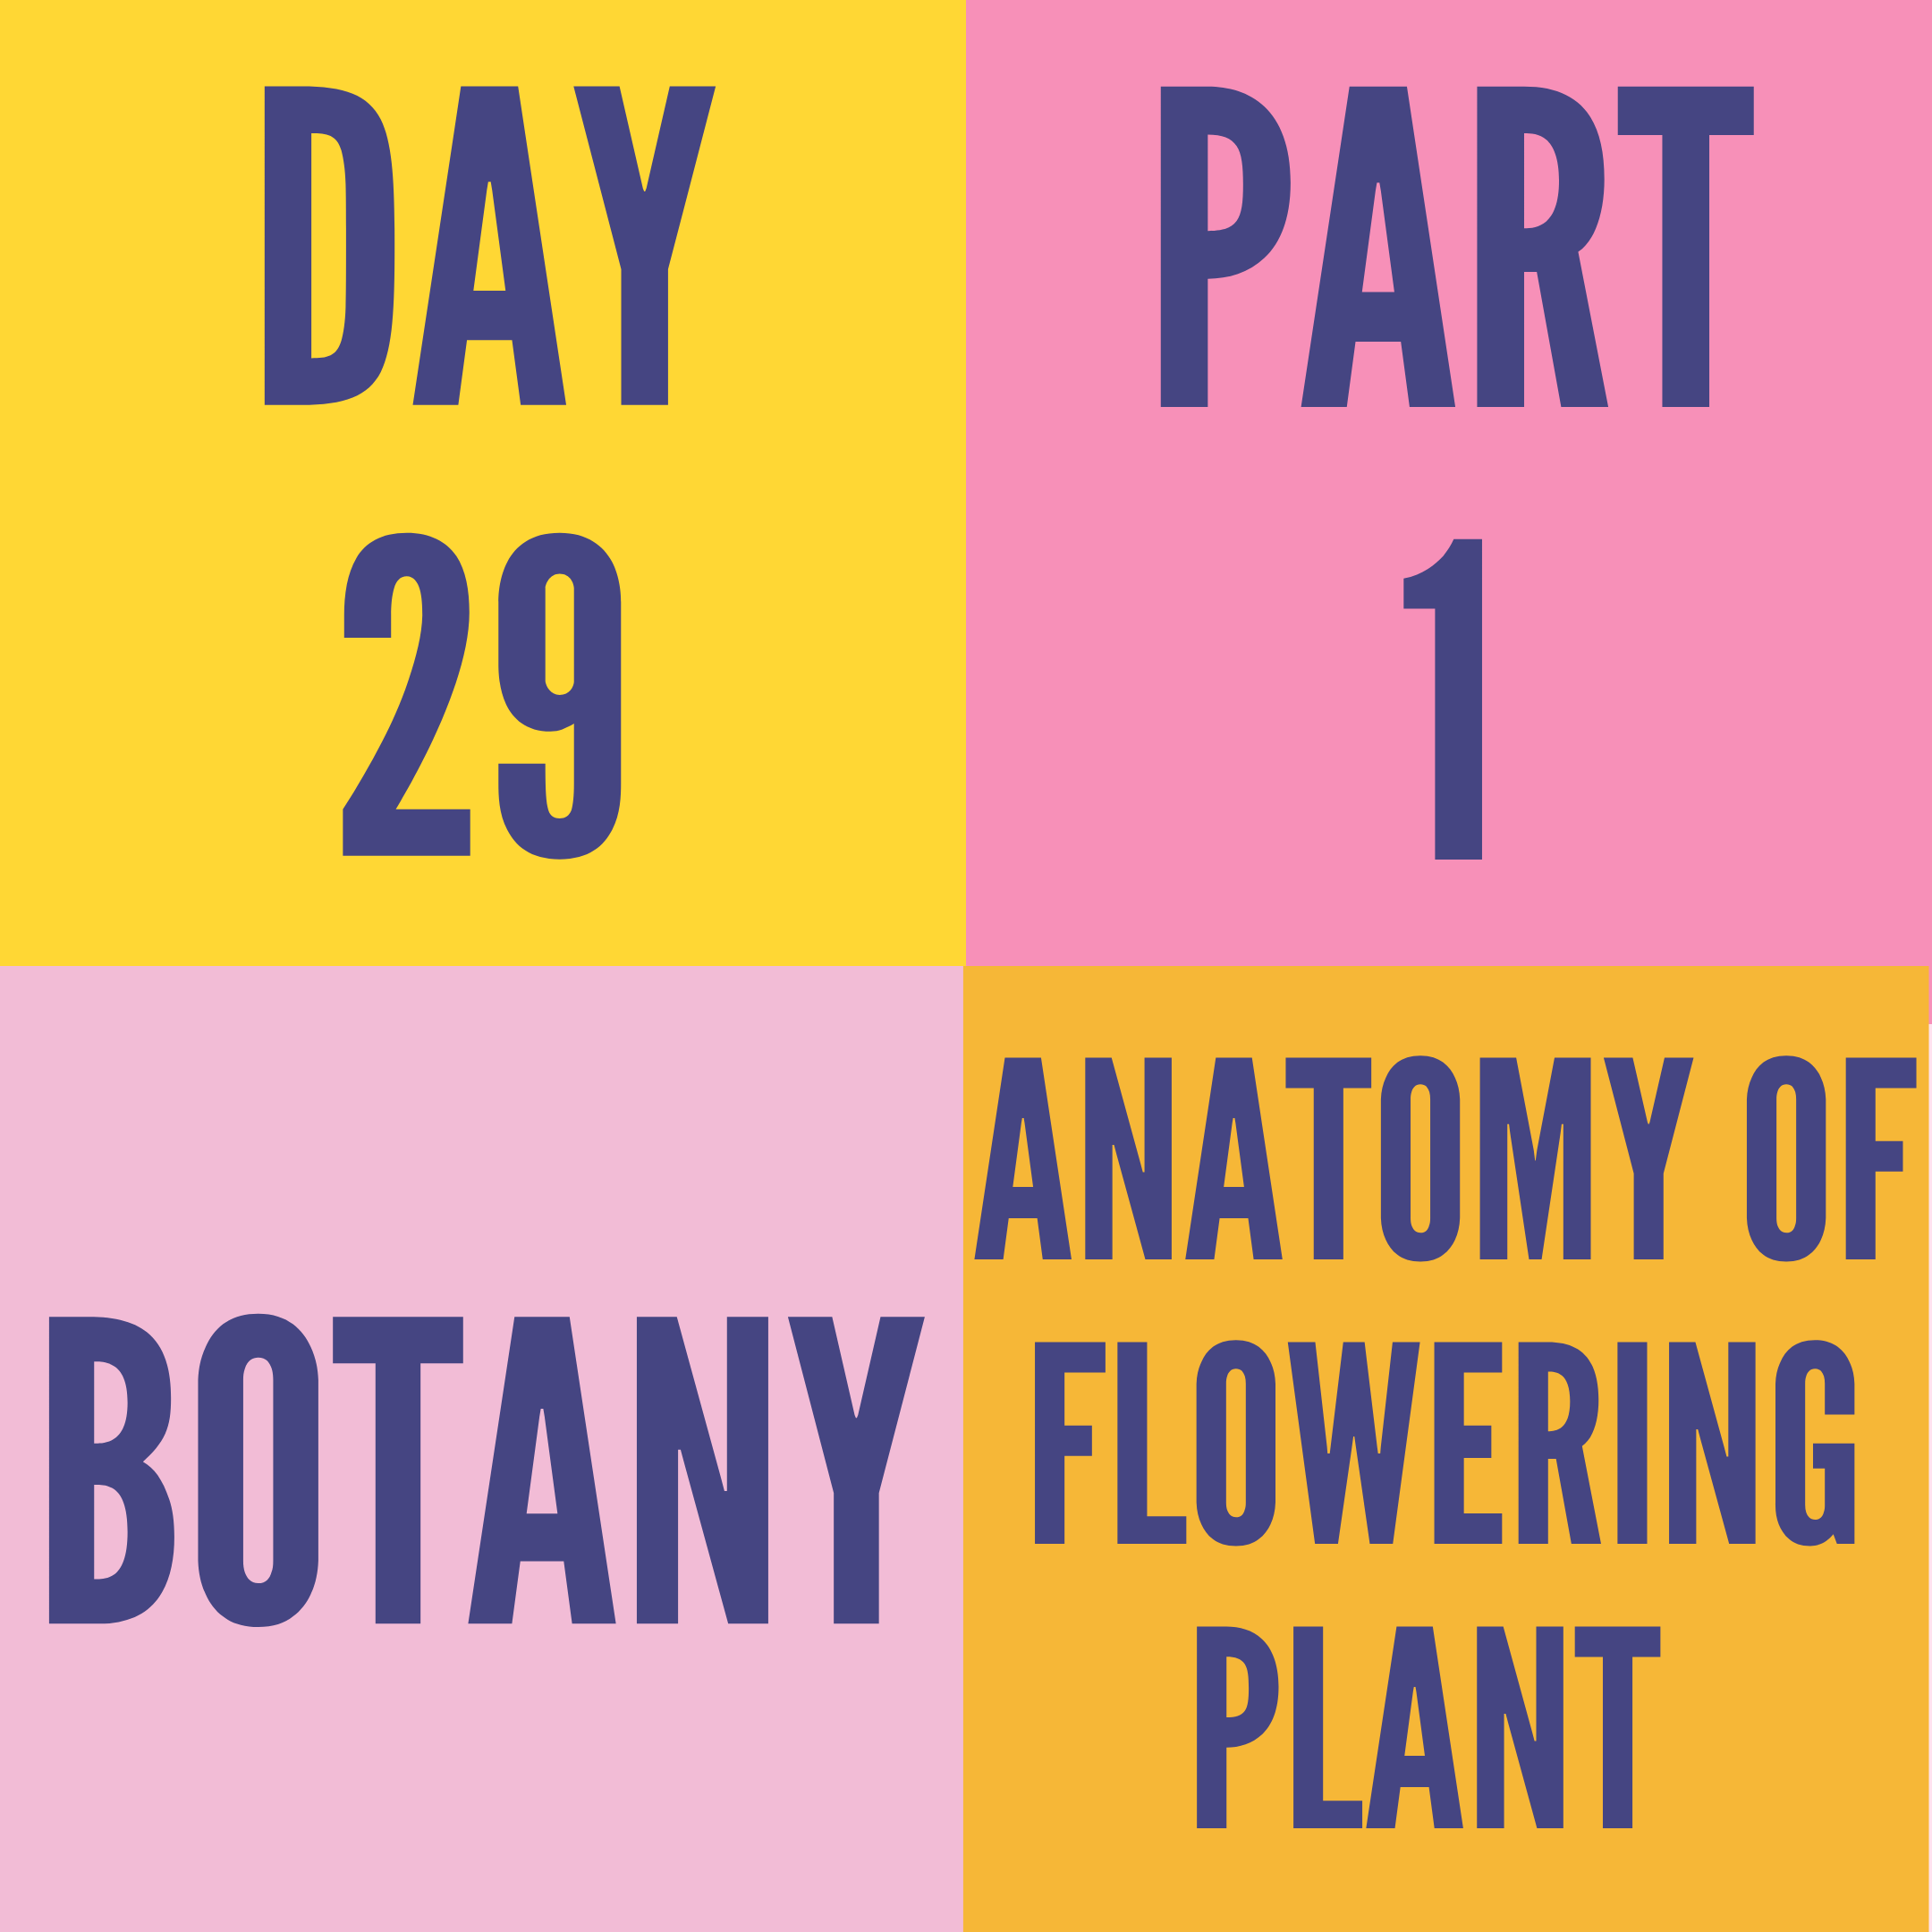 DAY-29 PART-1 ANATOMY OF FLOWERING PLANT